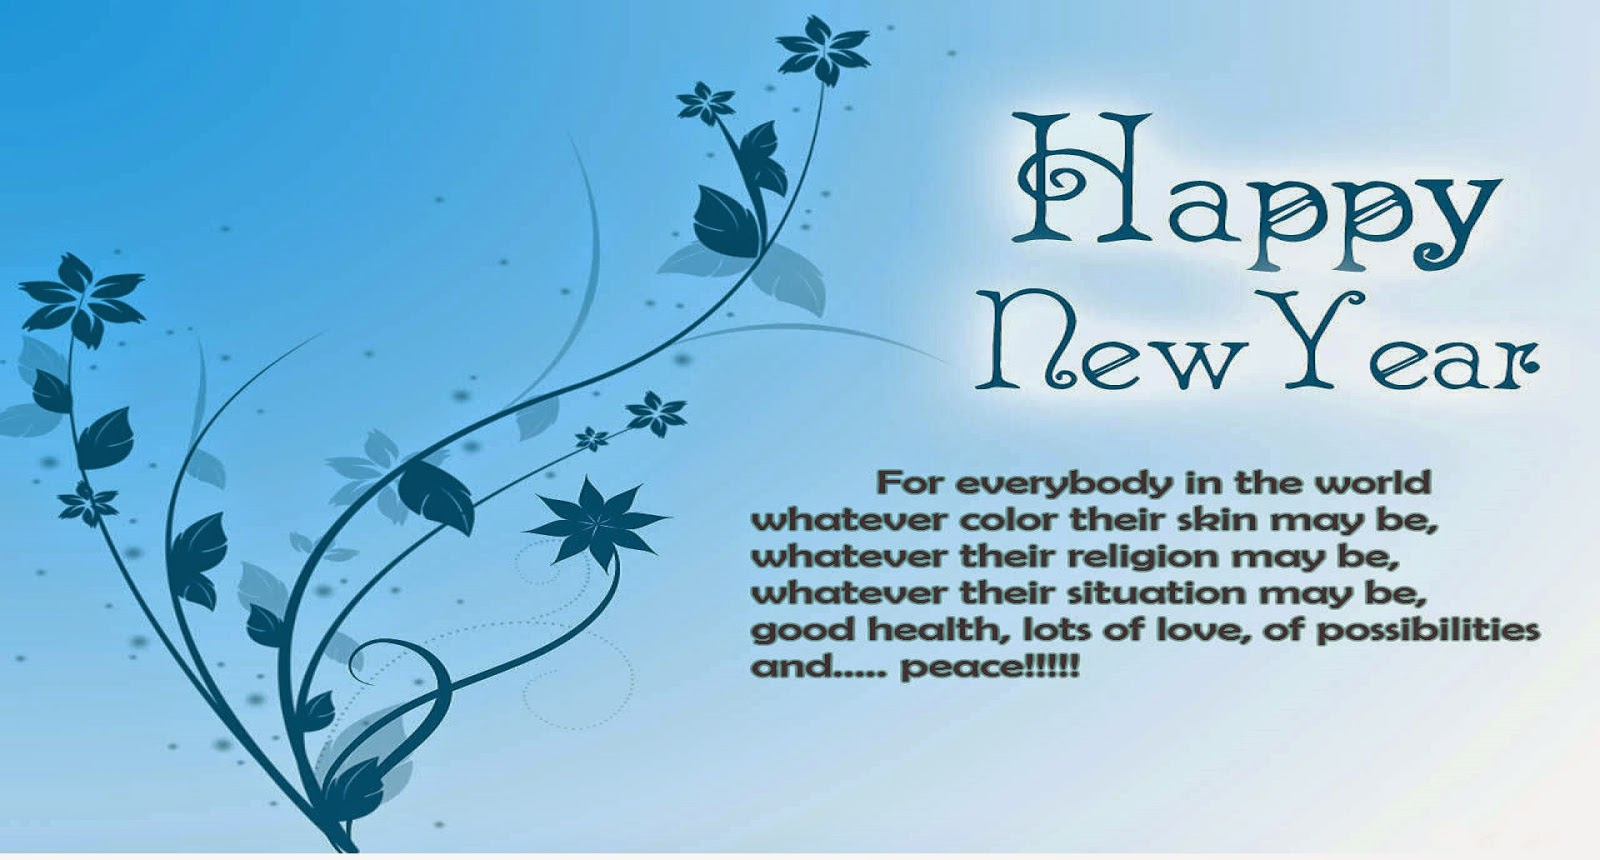 Religious Happy New Year 2015 Wallpapers,Images,E Cards,Greetings ...